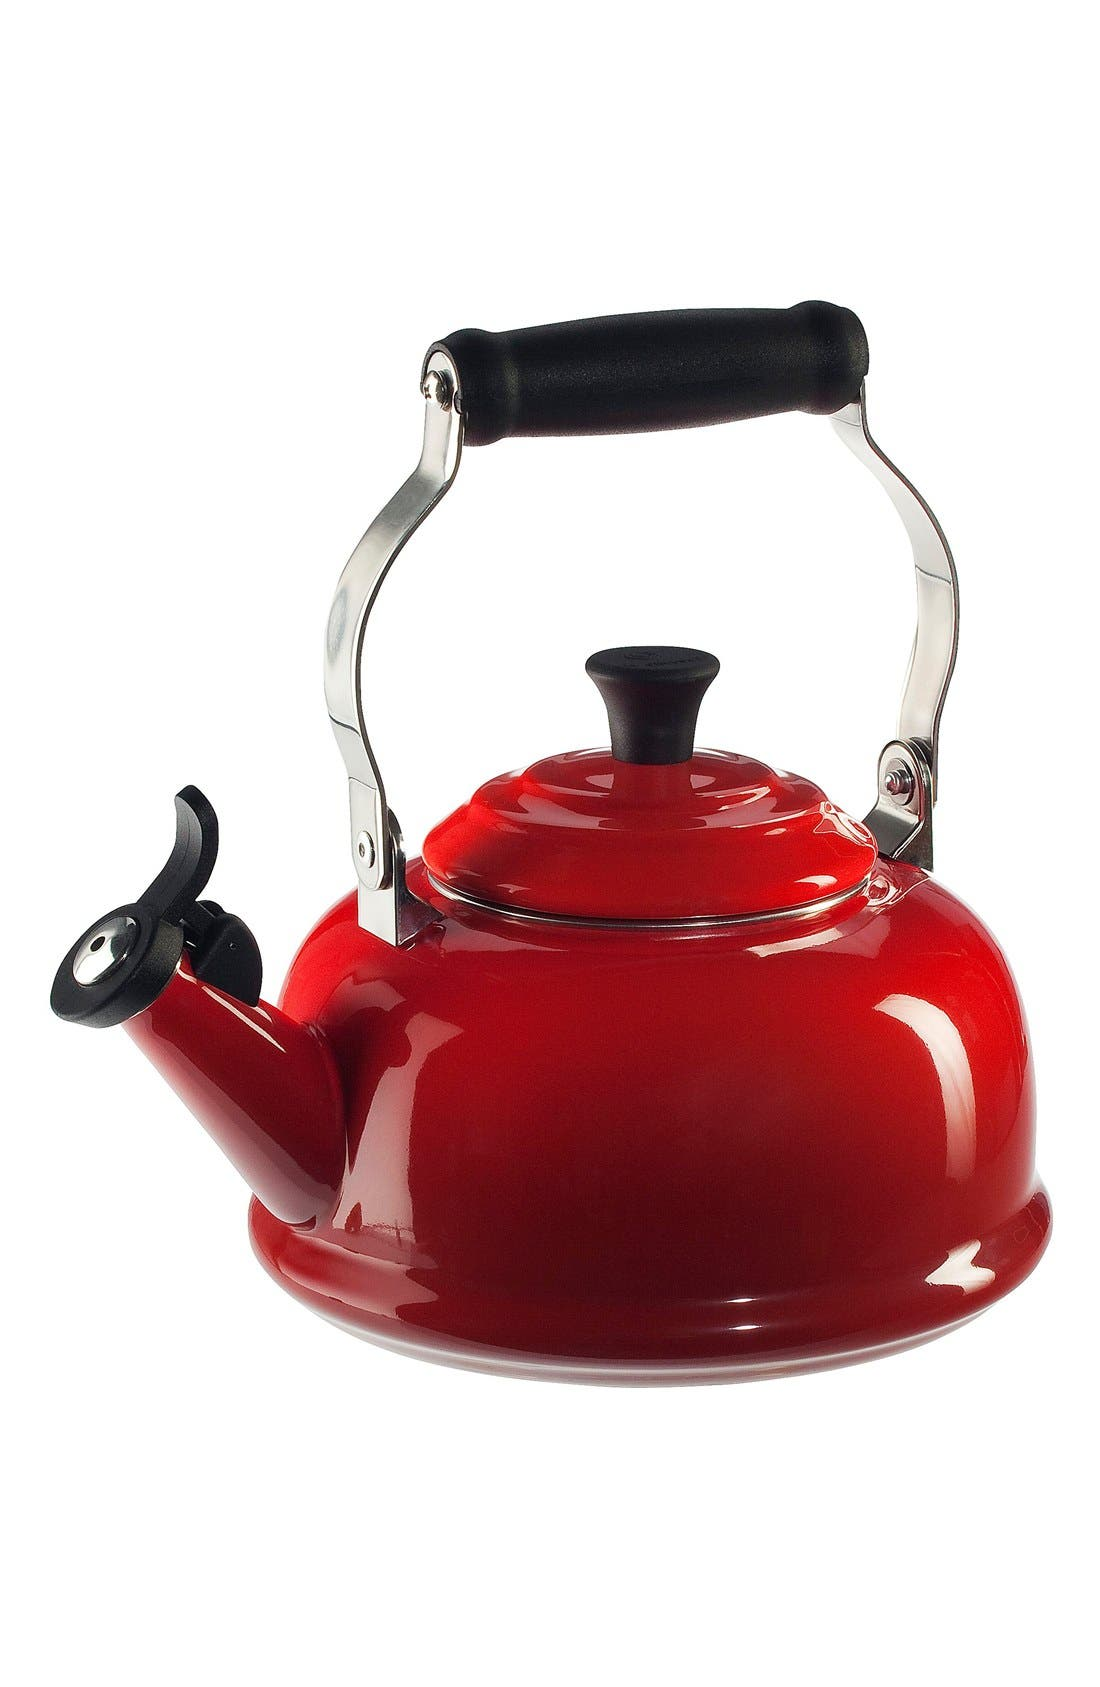 Alternate Image 1 Selected - Le Creuset Classic Whistling Tea Kettle